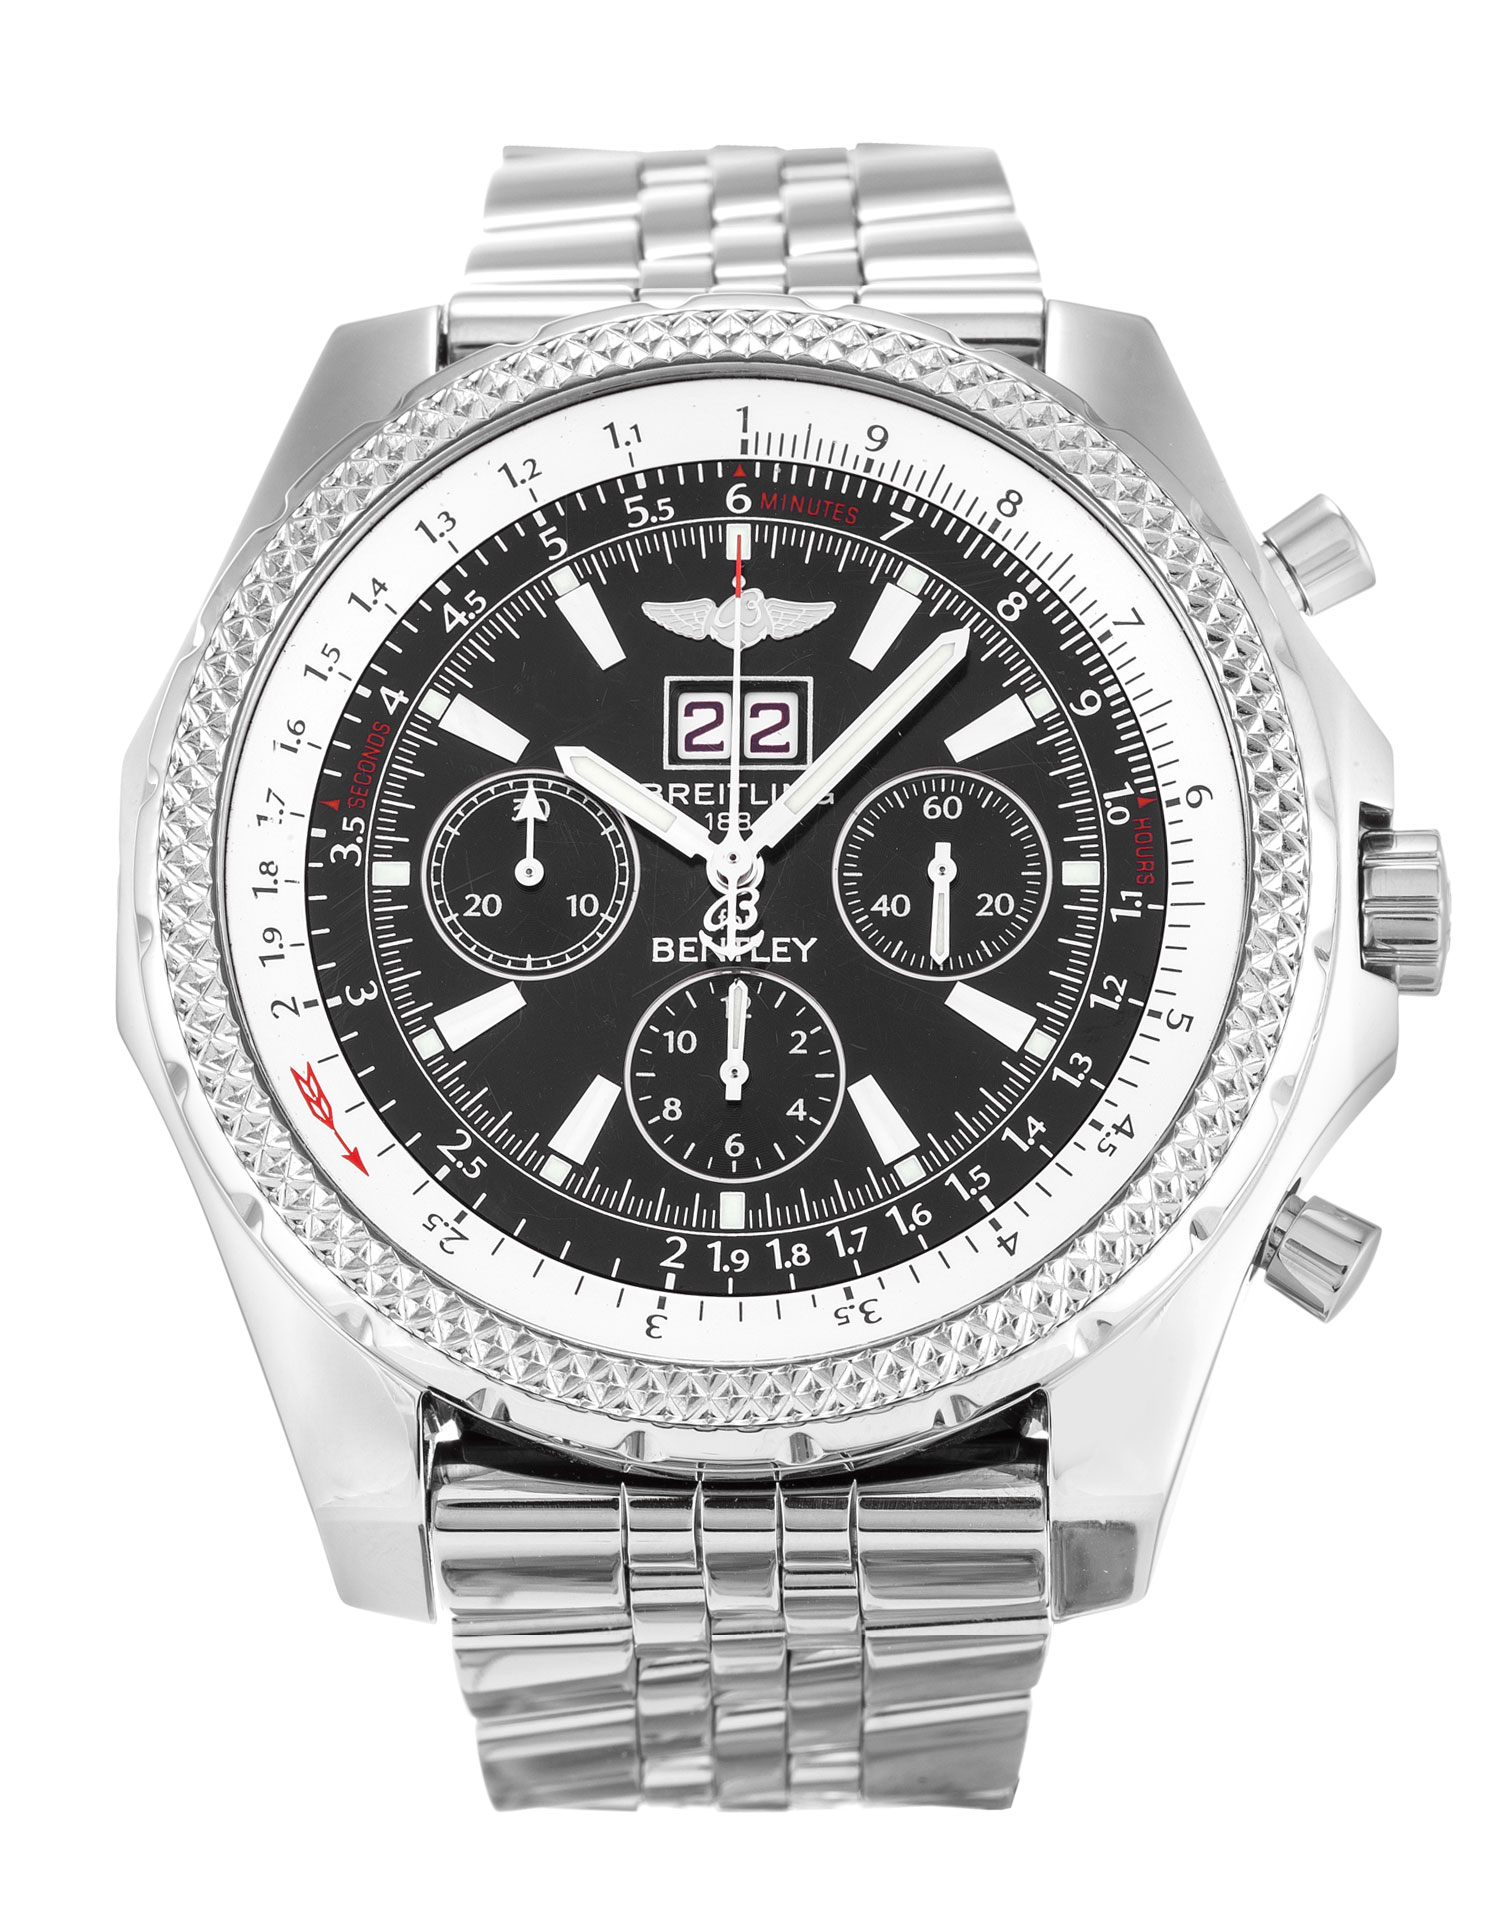 Breitling Bentley 6.75 A44362 Mens 48.8 Mm Steel Case Quartz Movement – iapac.to